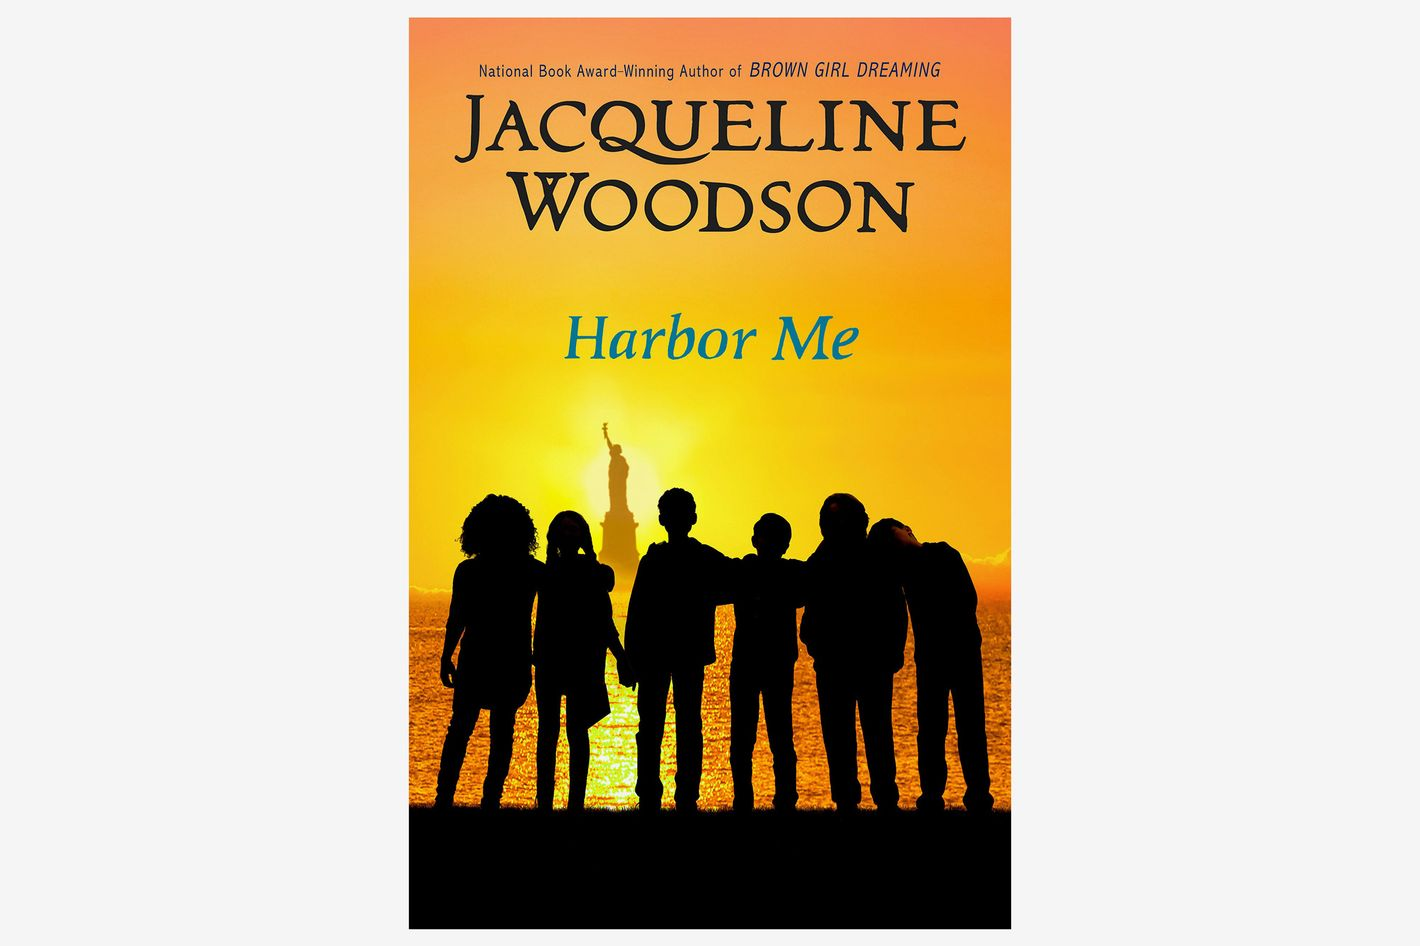 Harbor Me, by Jacqueline Woodson